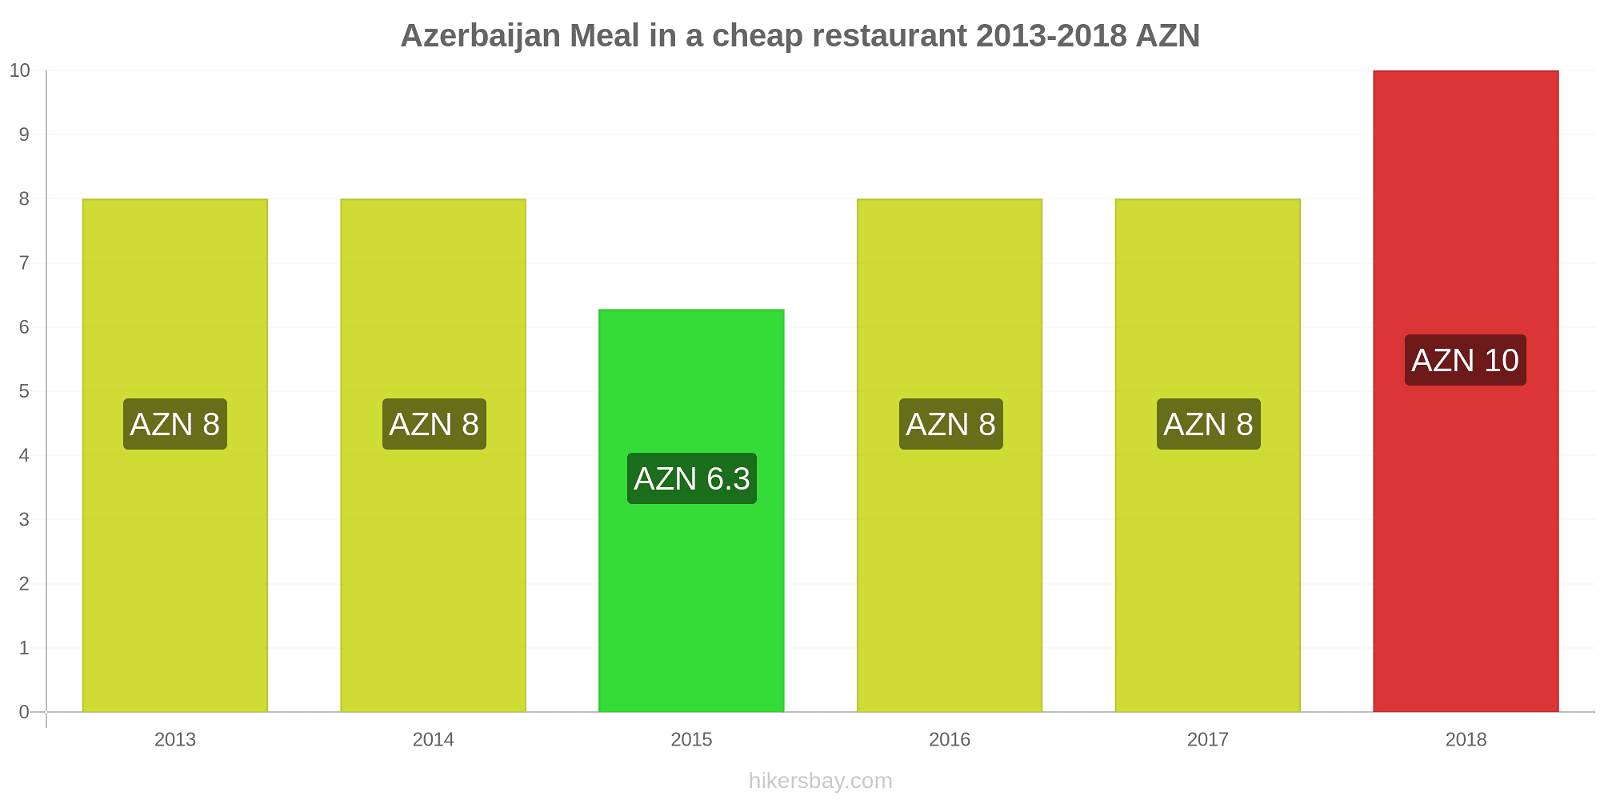 Azerbaijan price changes Meal in a cheap restaurant hikersbay.com